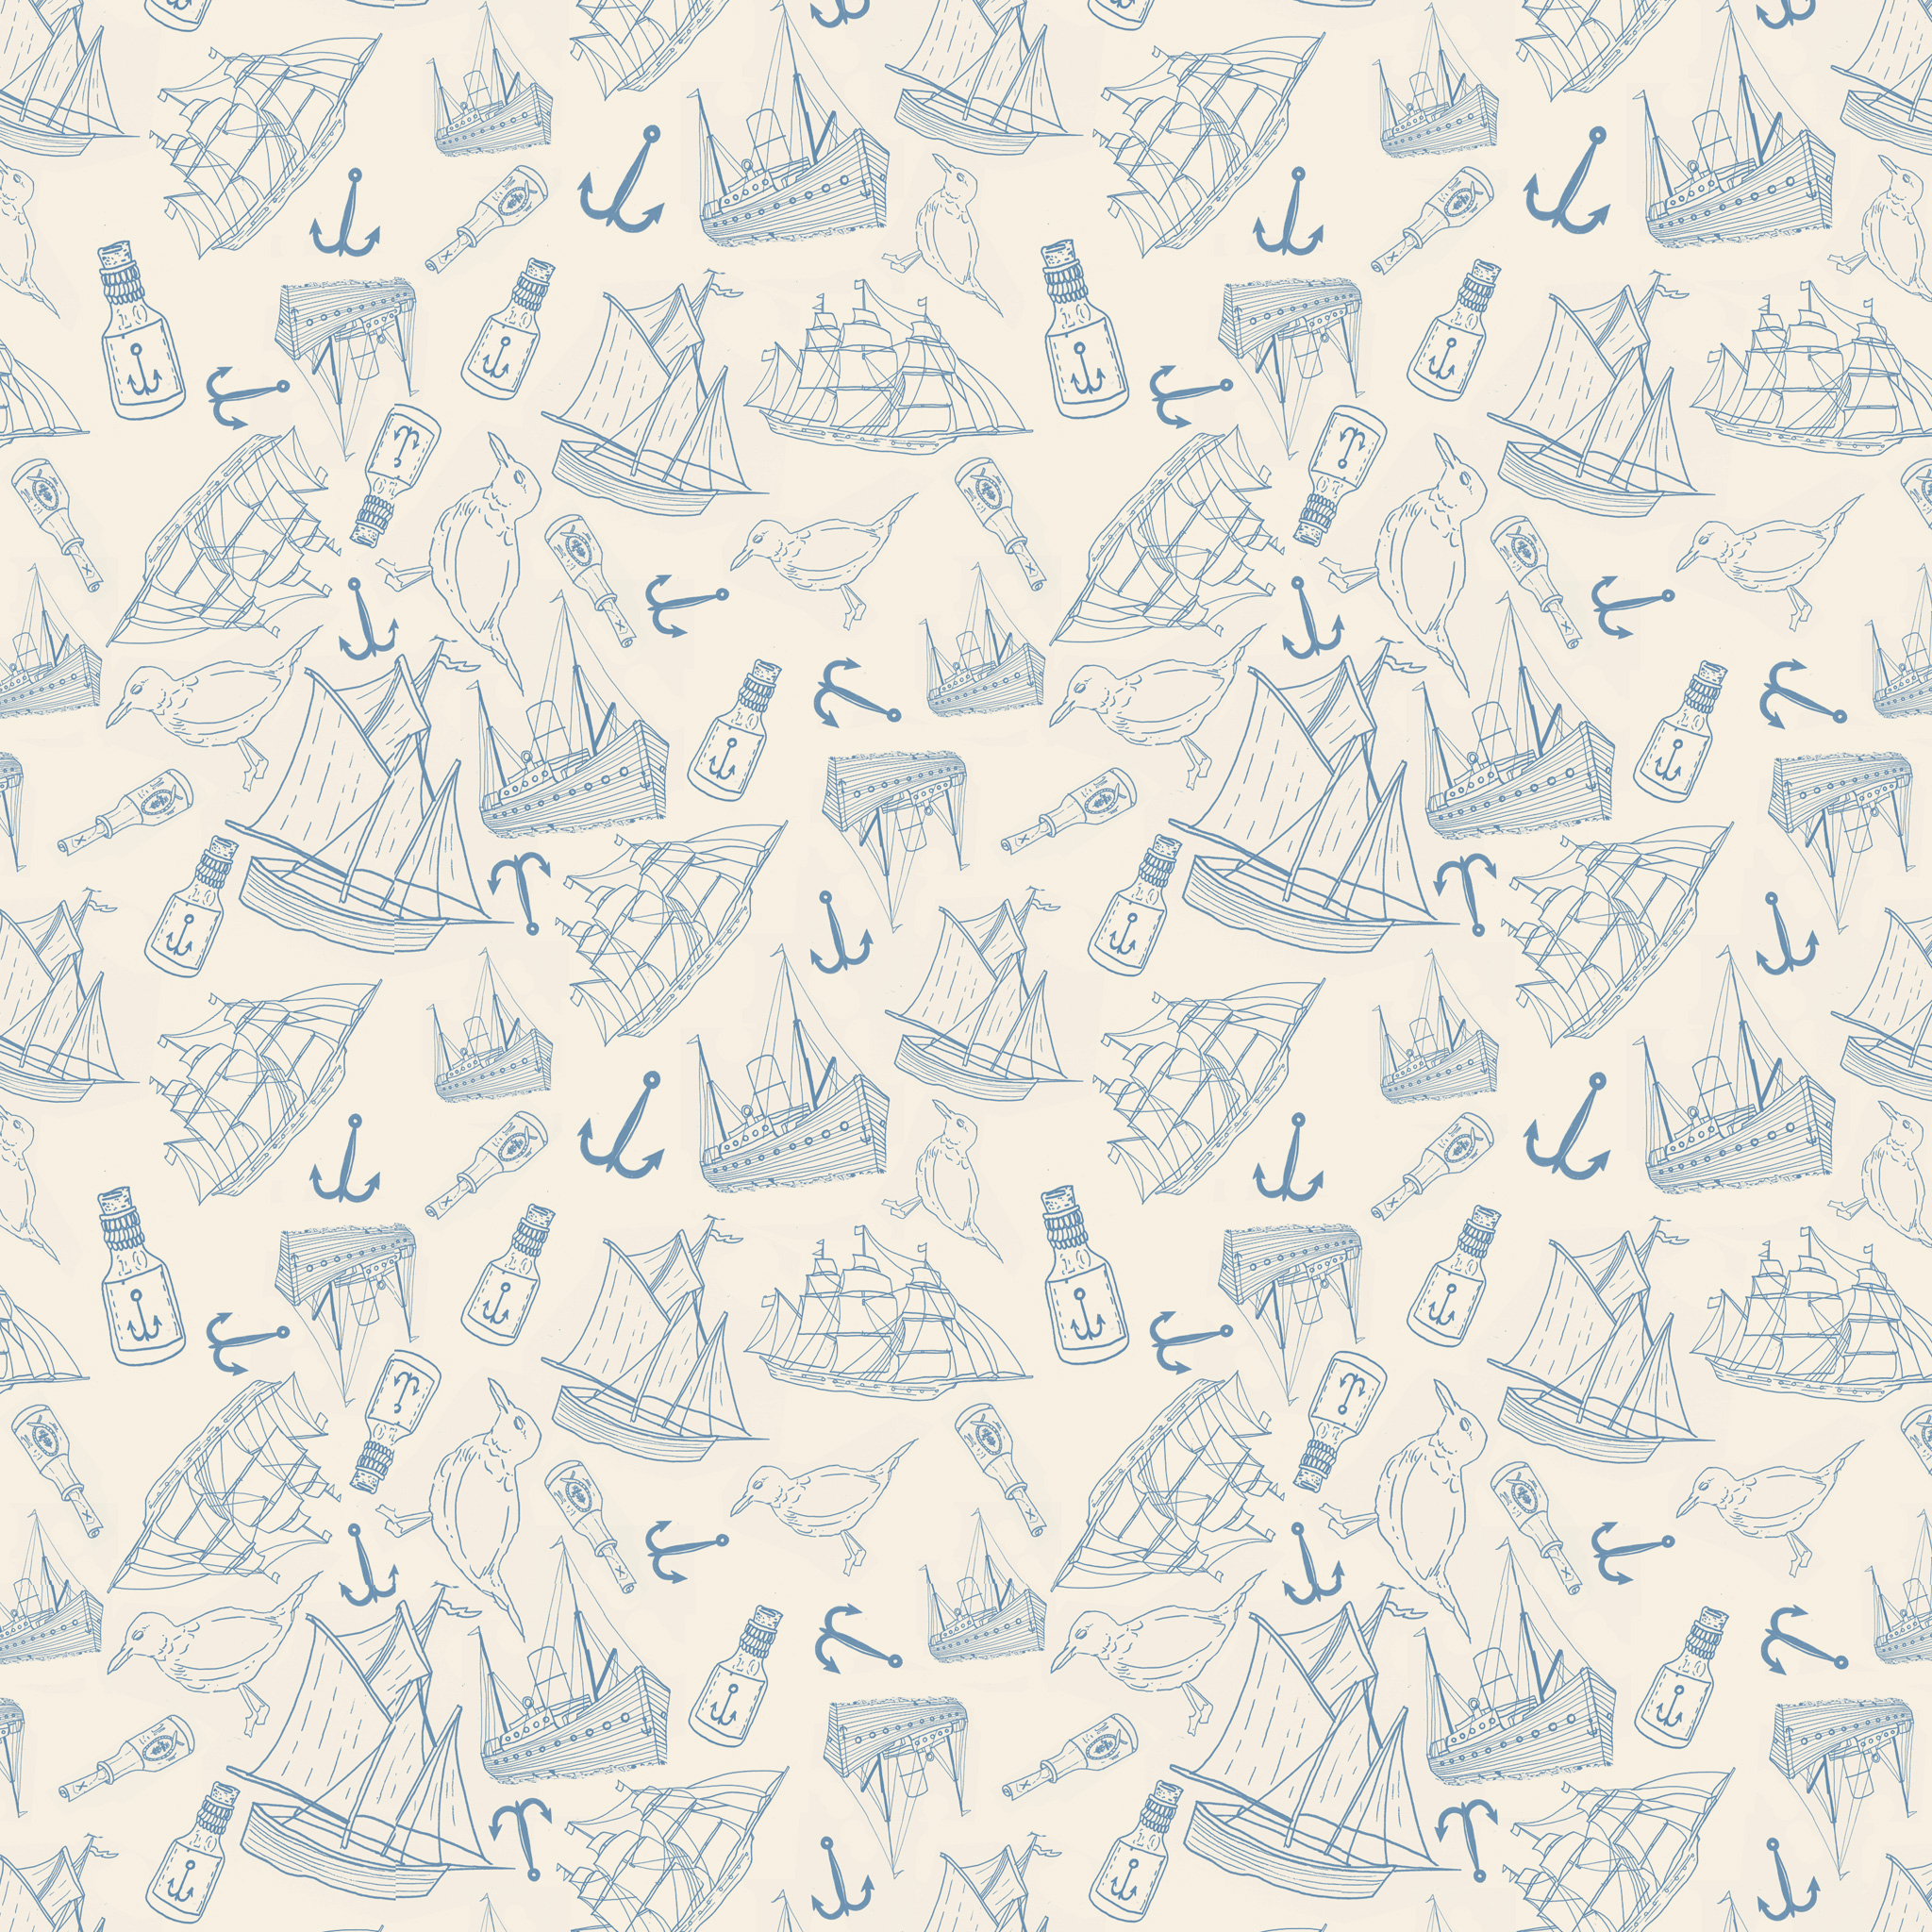 Nautical Wallpaper - WallpaperSafari